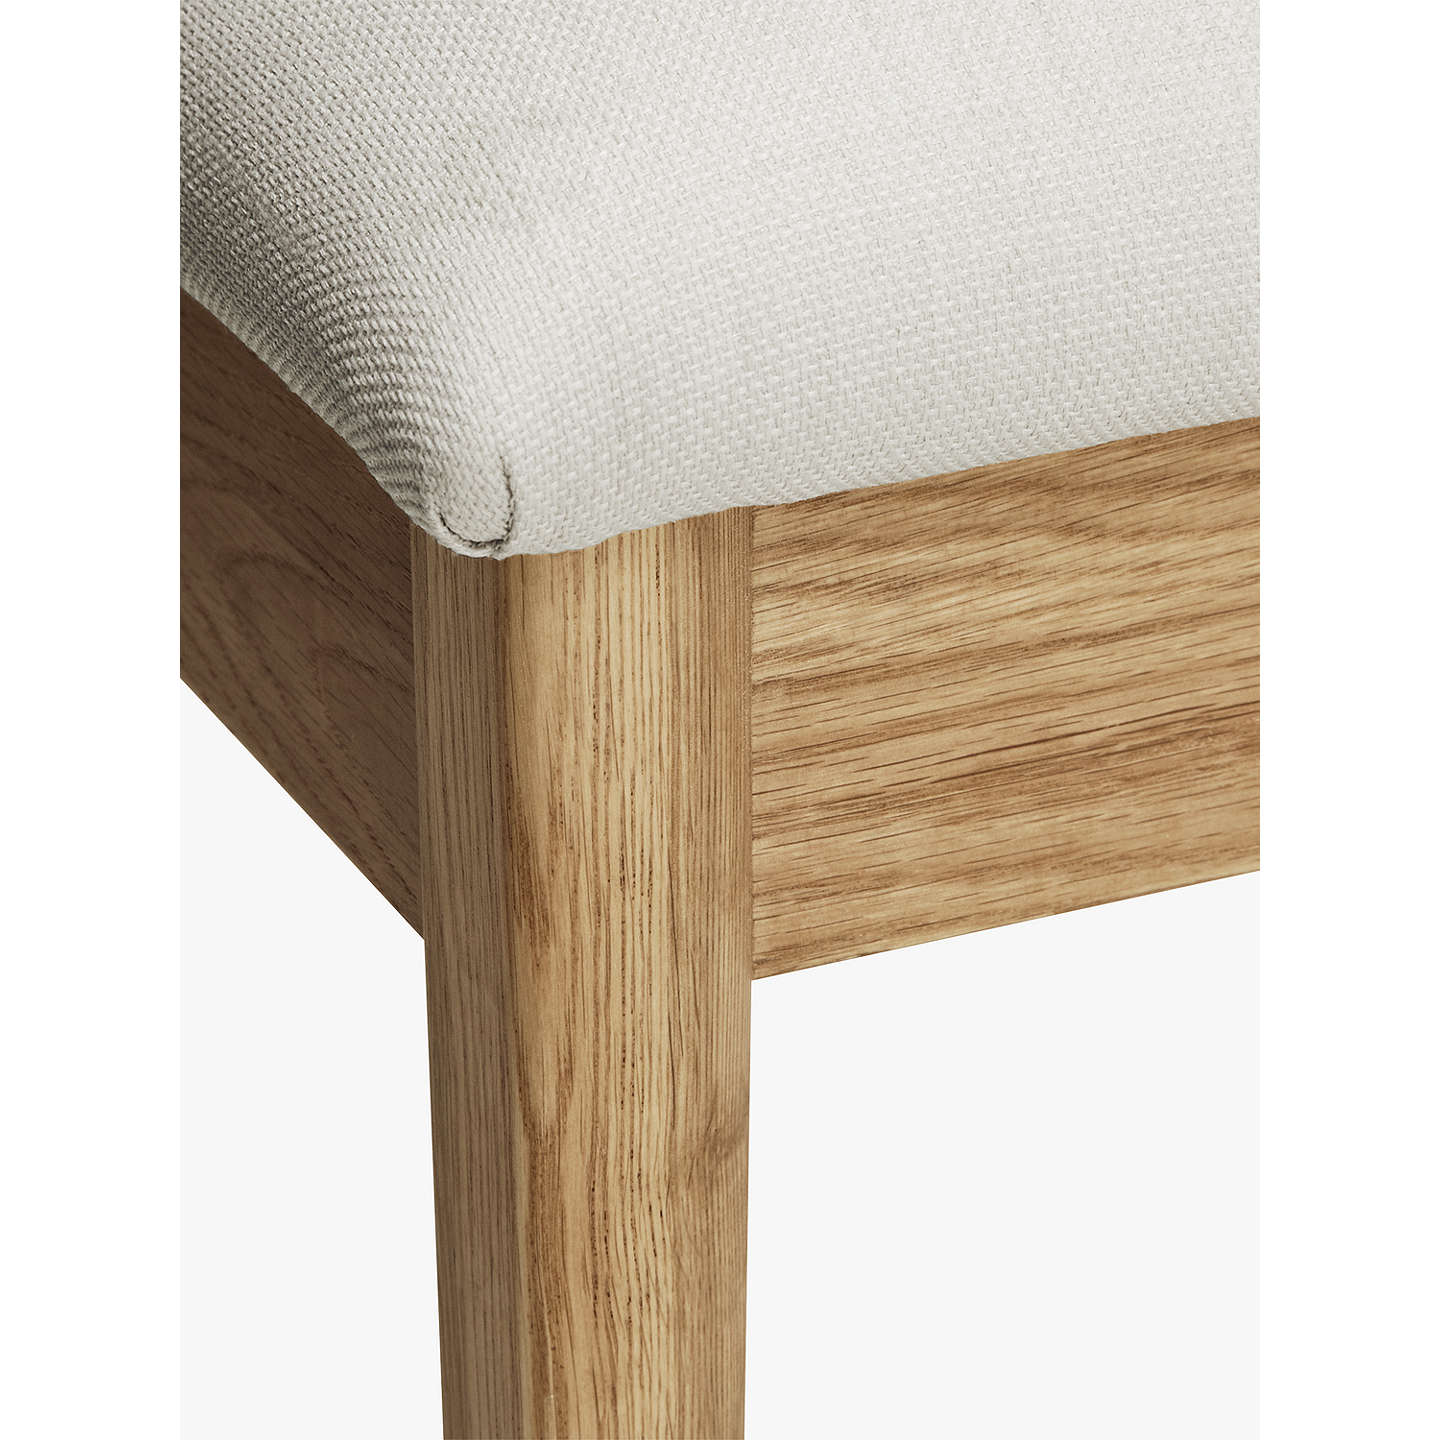 John lewis essence stool oak at john lewis for John lewis chinese furniture